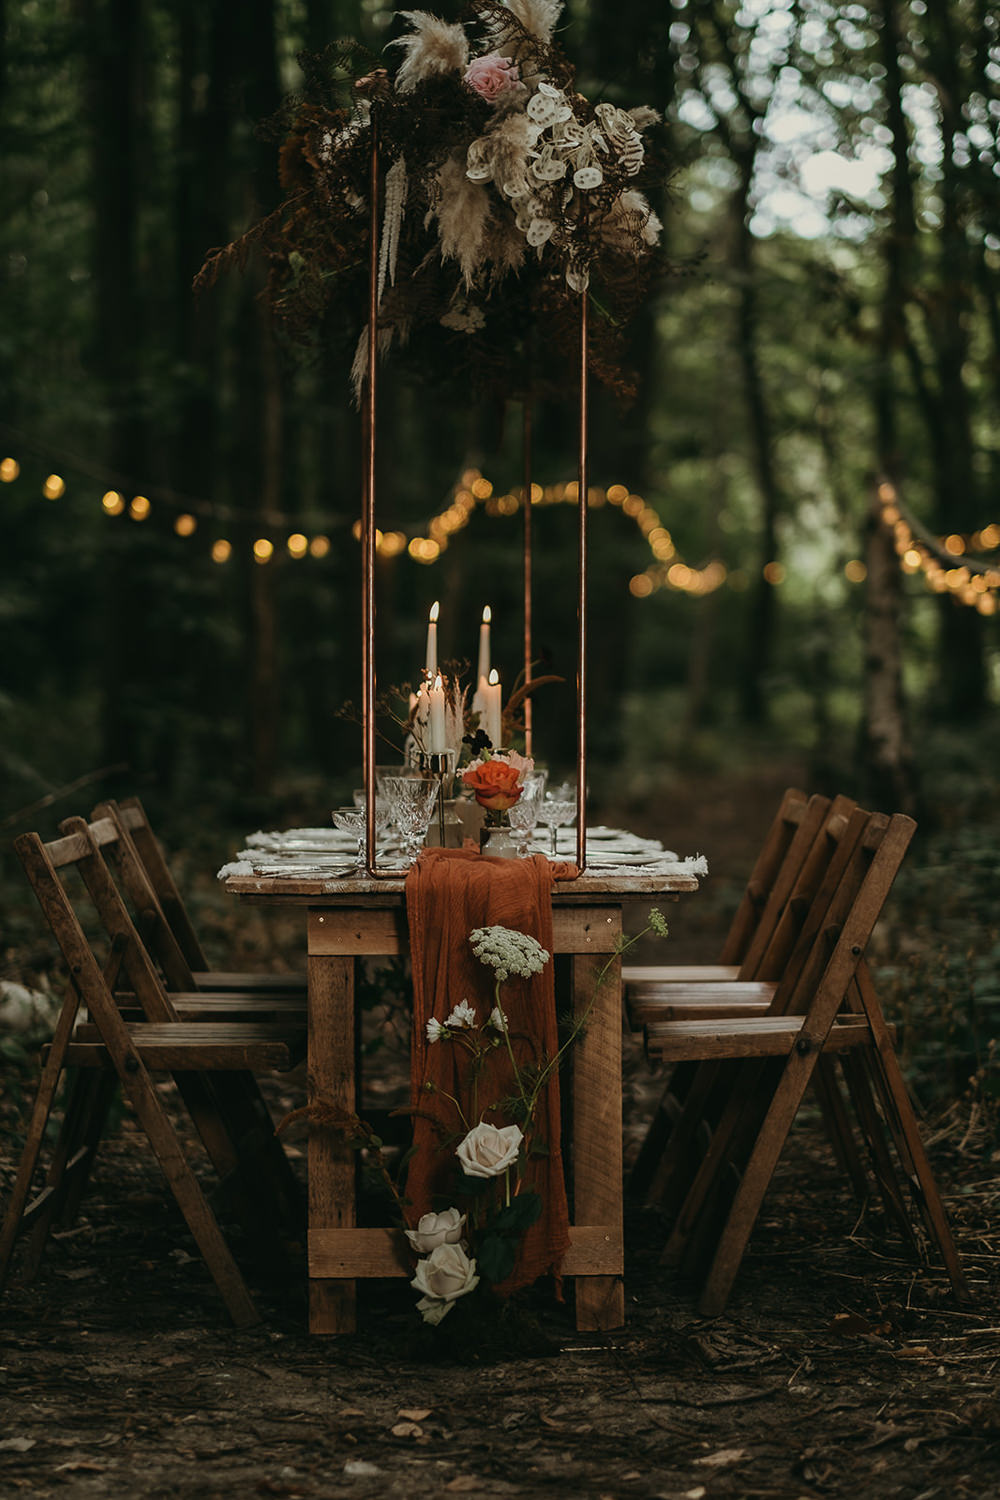 Table Tablescape Decor Candles Flowers Lighting Woods Wedding Tom Jeavons Photography